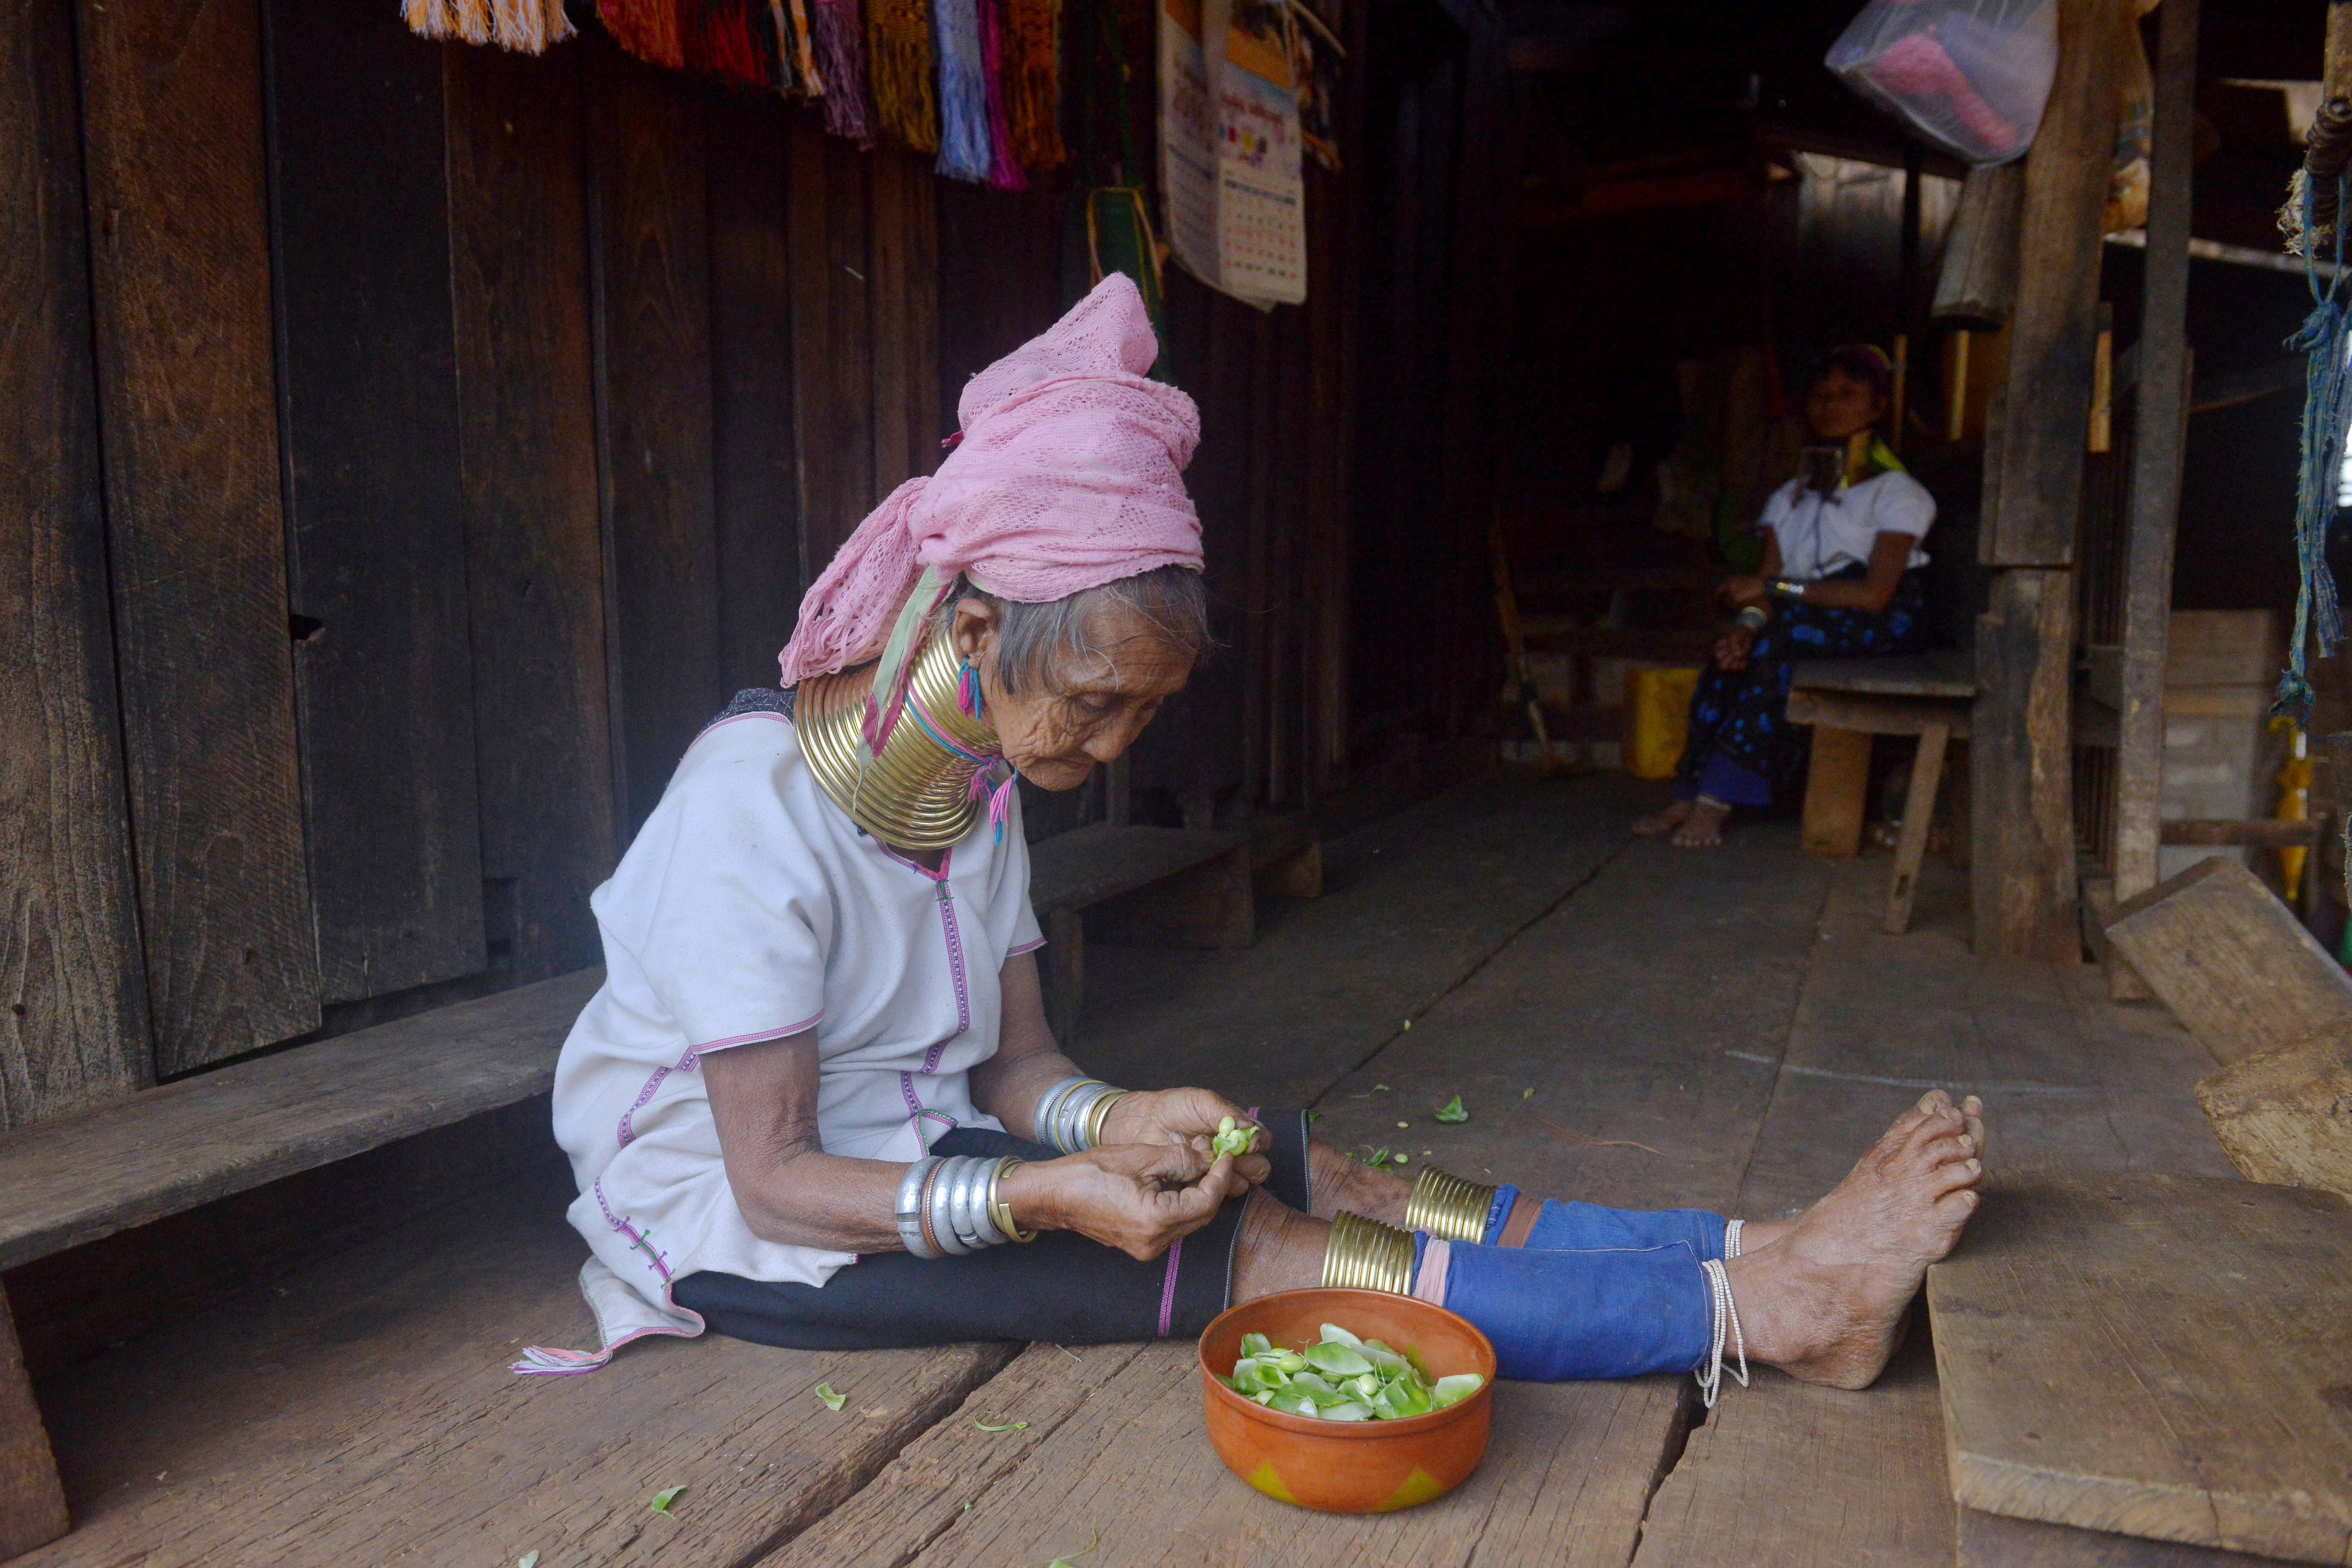 """In this picture taken on March 6, 2016 Monu, 76 year old Kayan tribeswoman, prepares food in her home wearing a stack of bronze neck coils, the statuesque sign of beauty of her Kayan tribe at Panpet village located in Demoso township in Kayah state, central Myanmar. For years Kayan women and girls have been driven across the border by poverty and conflict to pose in holidaymakers' pictures in purpose-built Thai villages, decried by campaigners as """"human zoos"""" that exploit a vulnerable minority. / AFP PHOTO / PHYO HEIN KYAW / TO GO WITH AFP STORY: Myanmar-Thailand-tourism-leisure-culture, FEATURE by Phyo Hein Kyaw"""